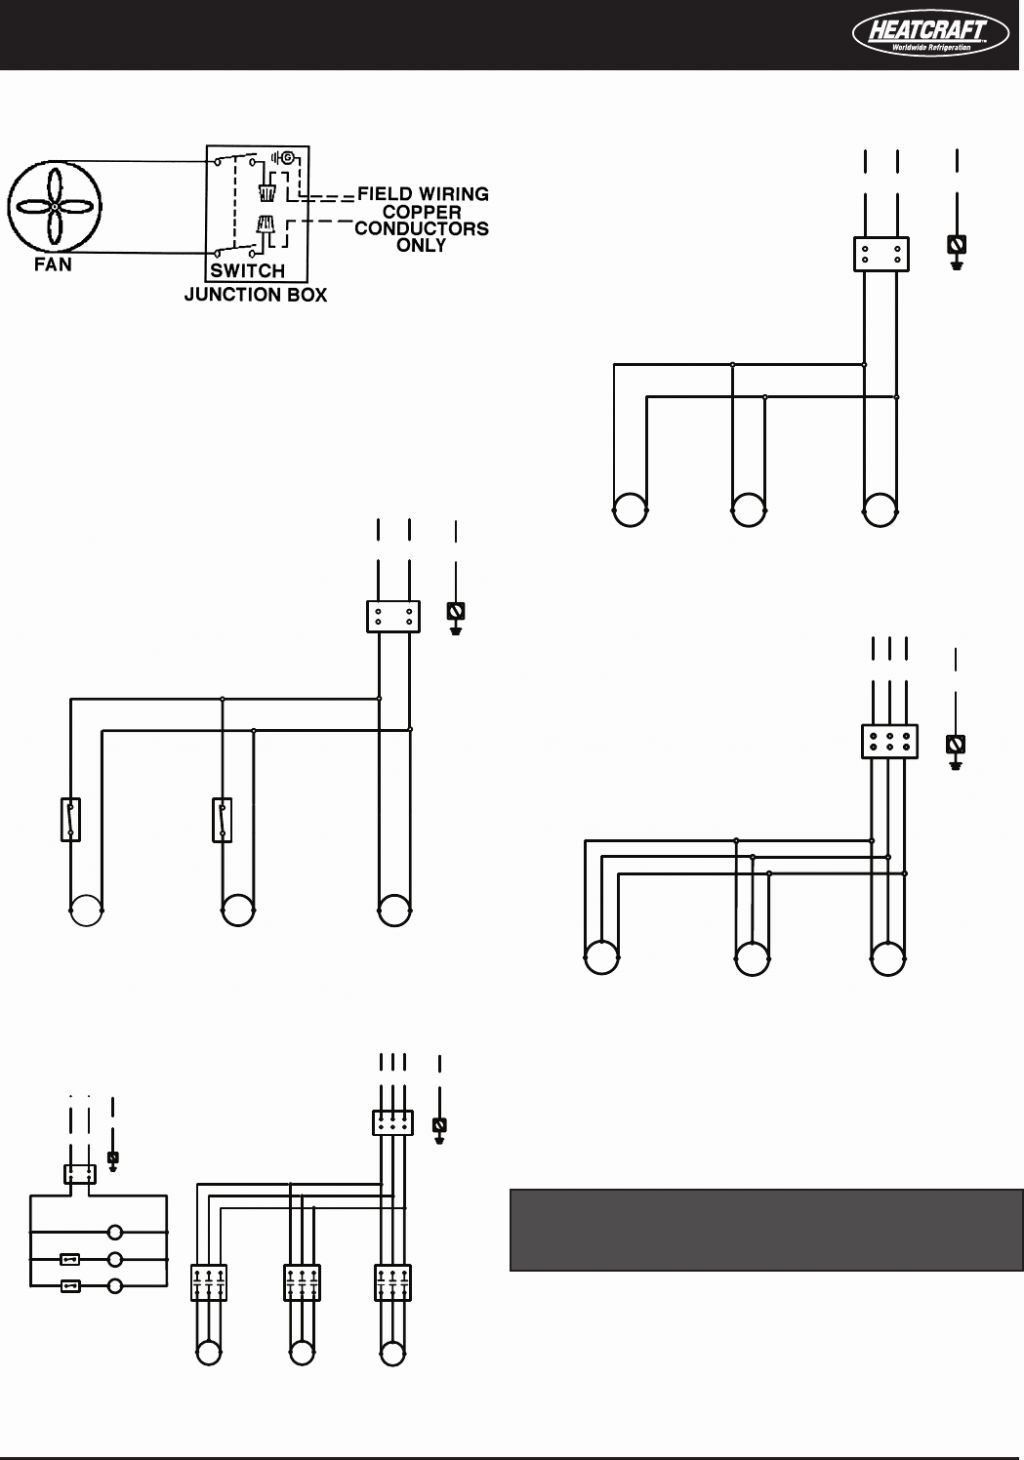 pye4557ayw wiring diagram for timer